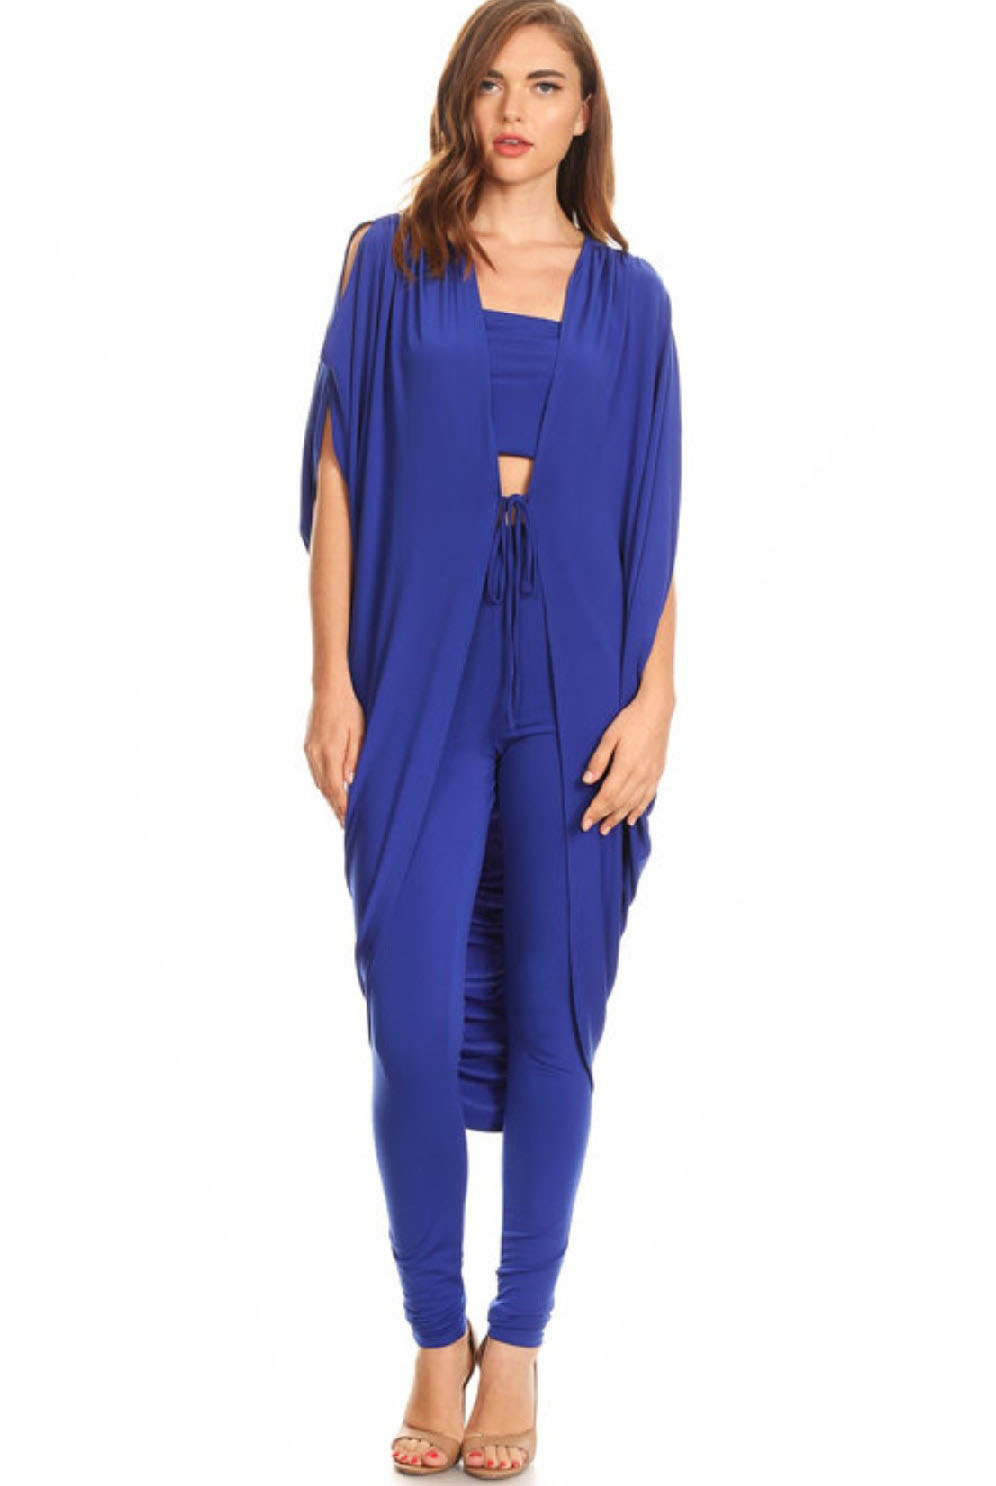 3 Piece Royal Blue Set